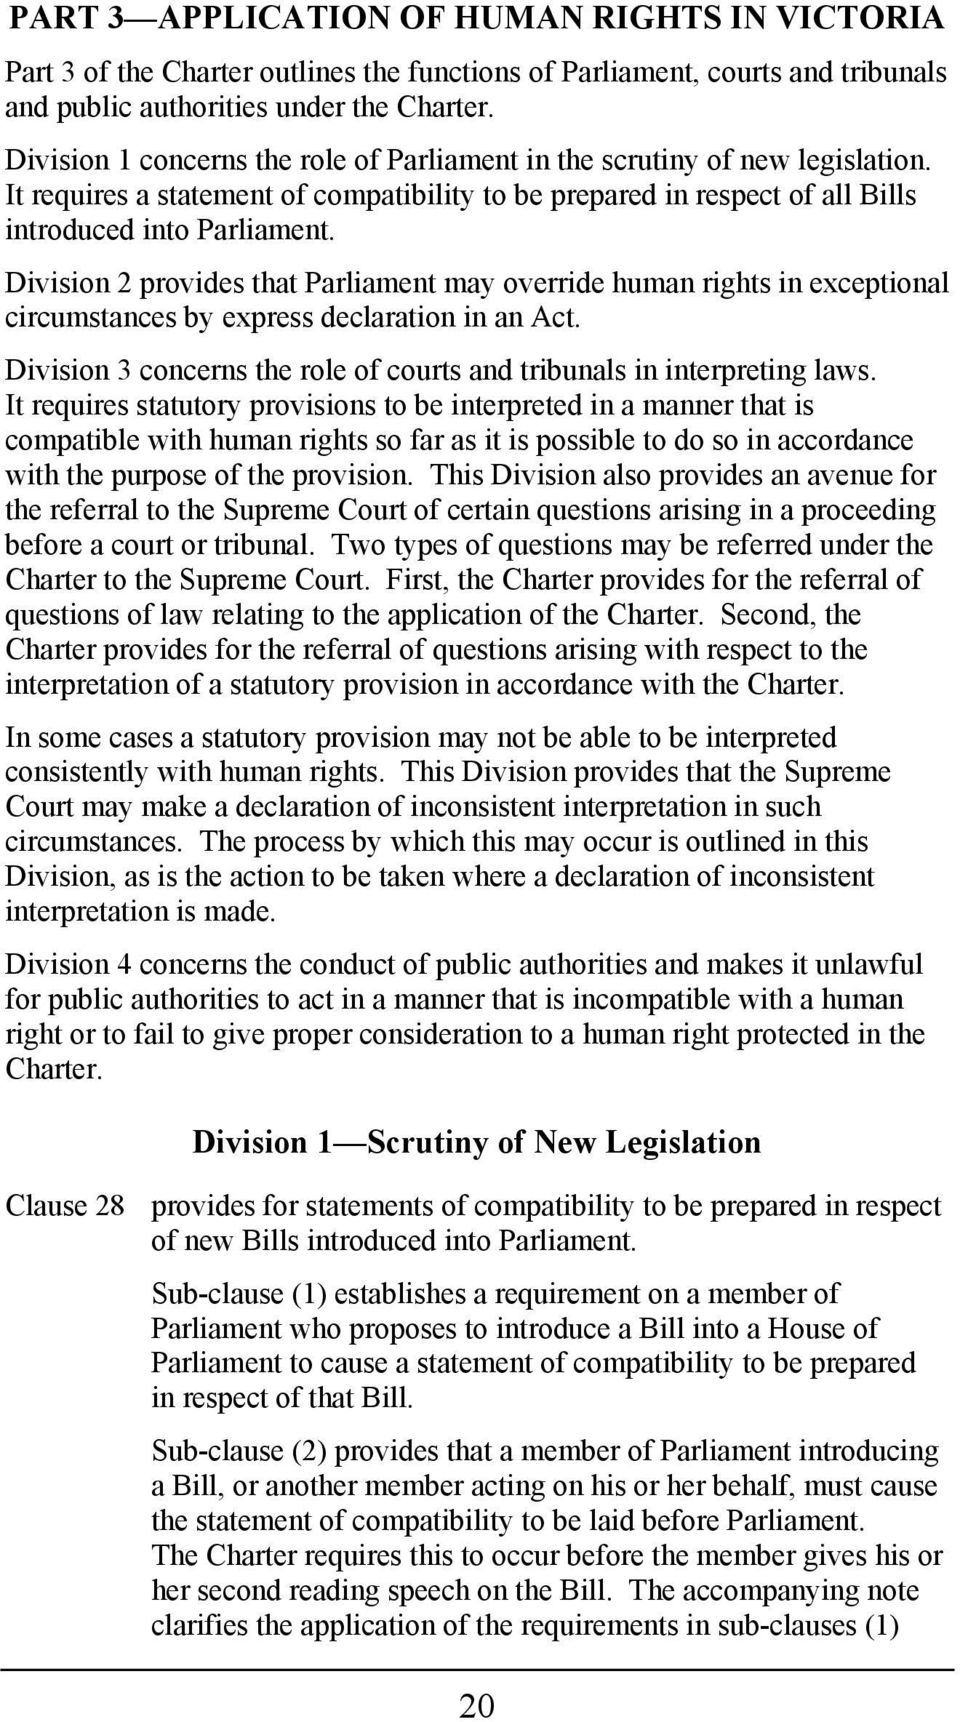 Division 2 provides that Parliament may override human rights in exceptional circumstances by express declaration in an Act. Division 3 concerns the role of courts and tribunals in interpreting laws.